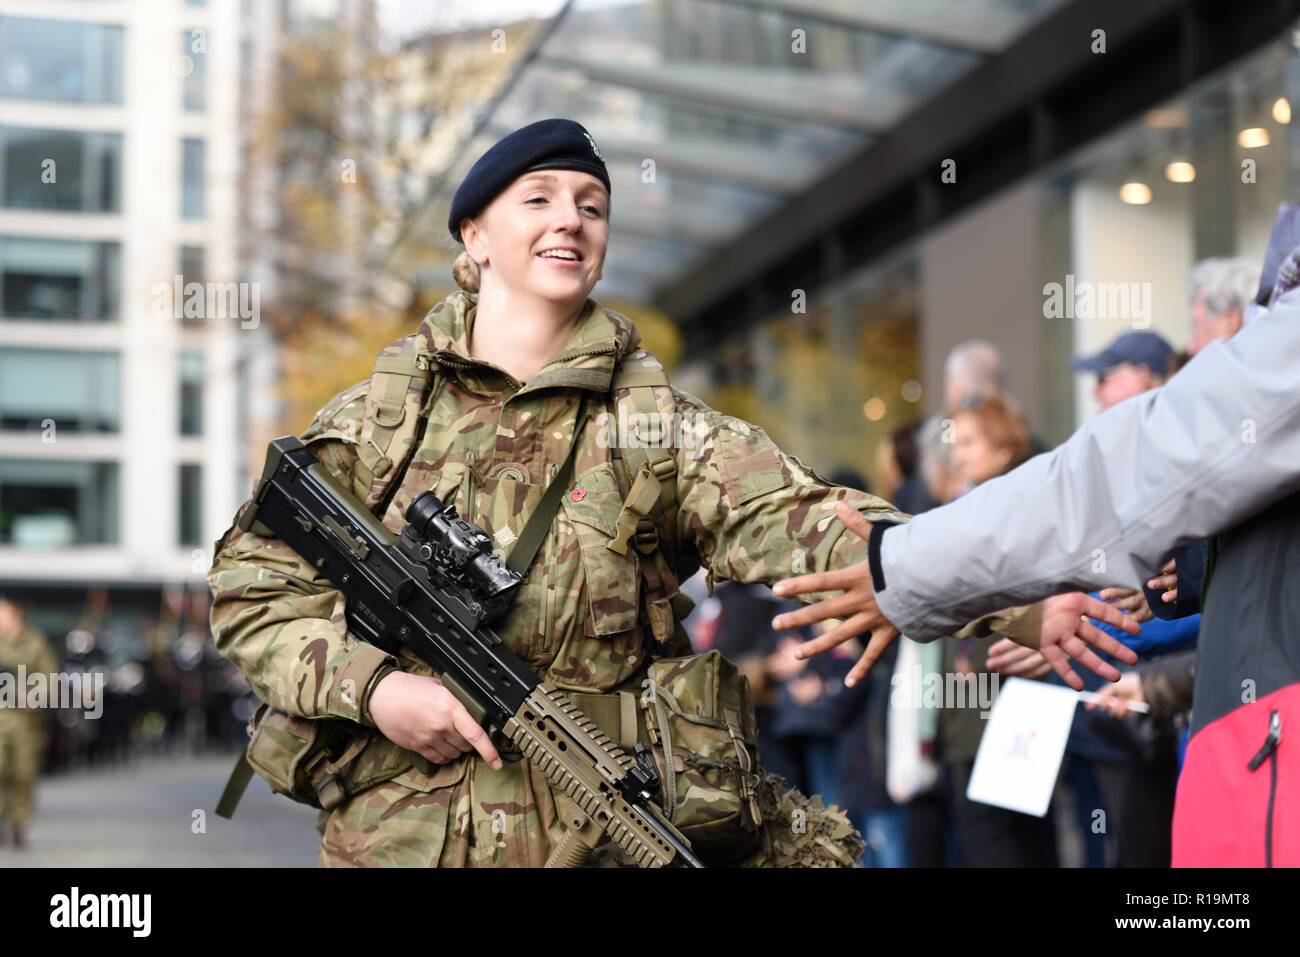 female-british-soldier-of-the-royal-yeomanry-in-the-lord-mayors-show-parade-london-uk-2018-military-army-R19MT8.jpg